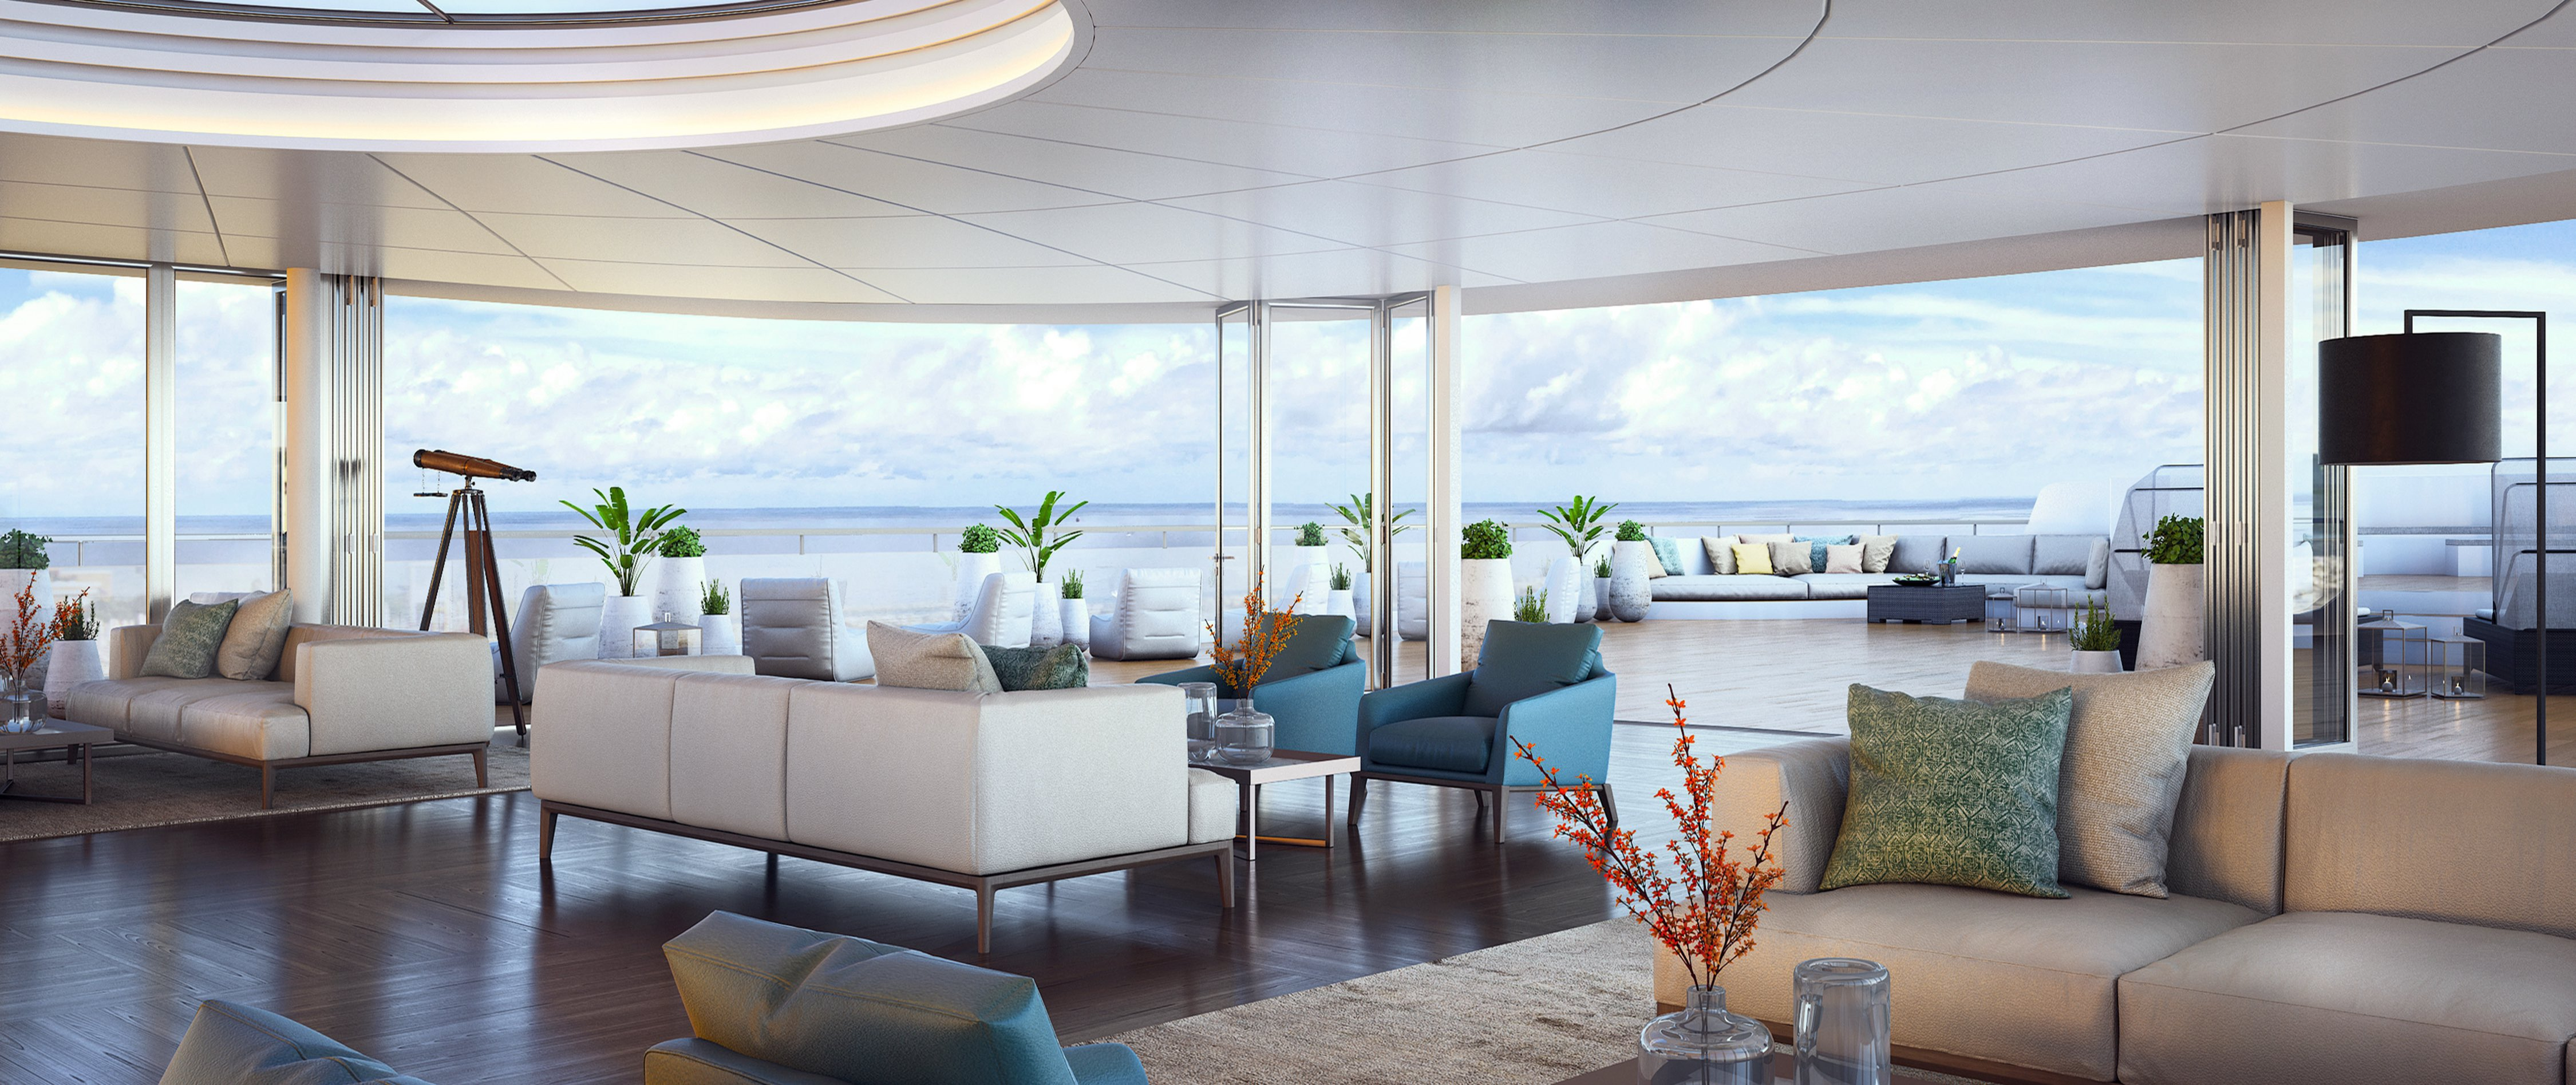 Observation Lounge, Ritz-Carlton yacht